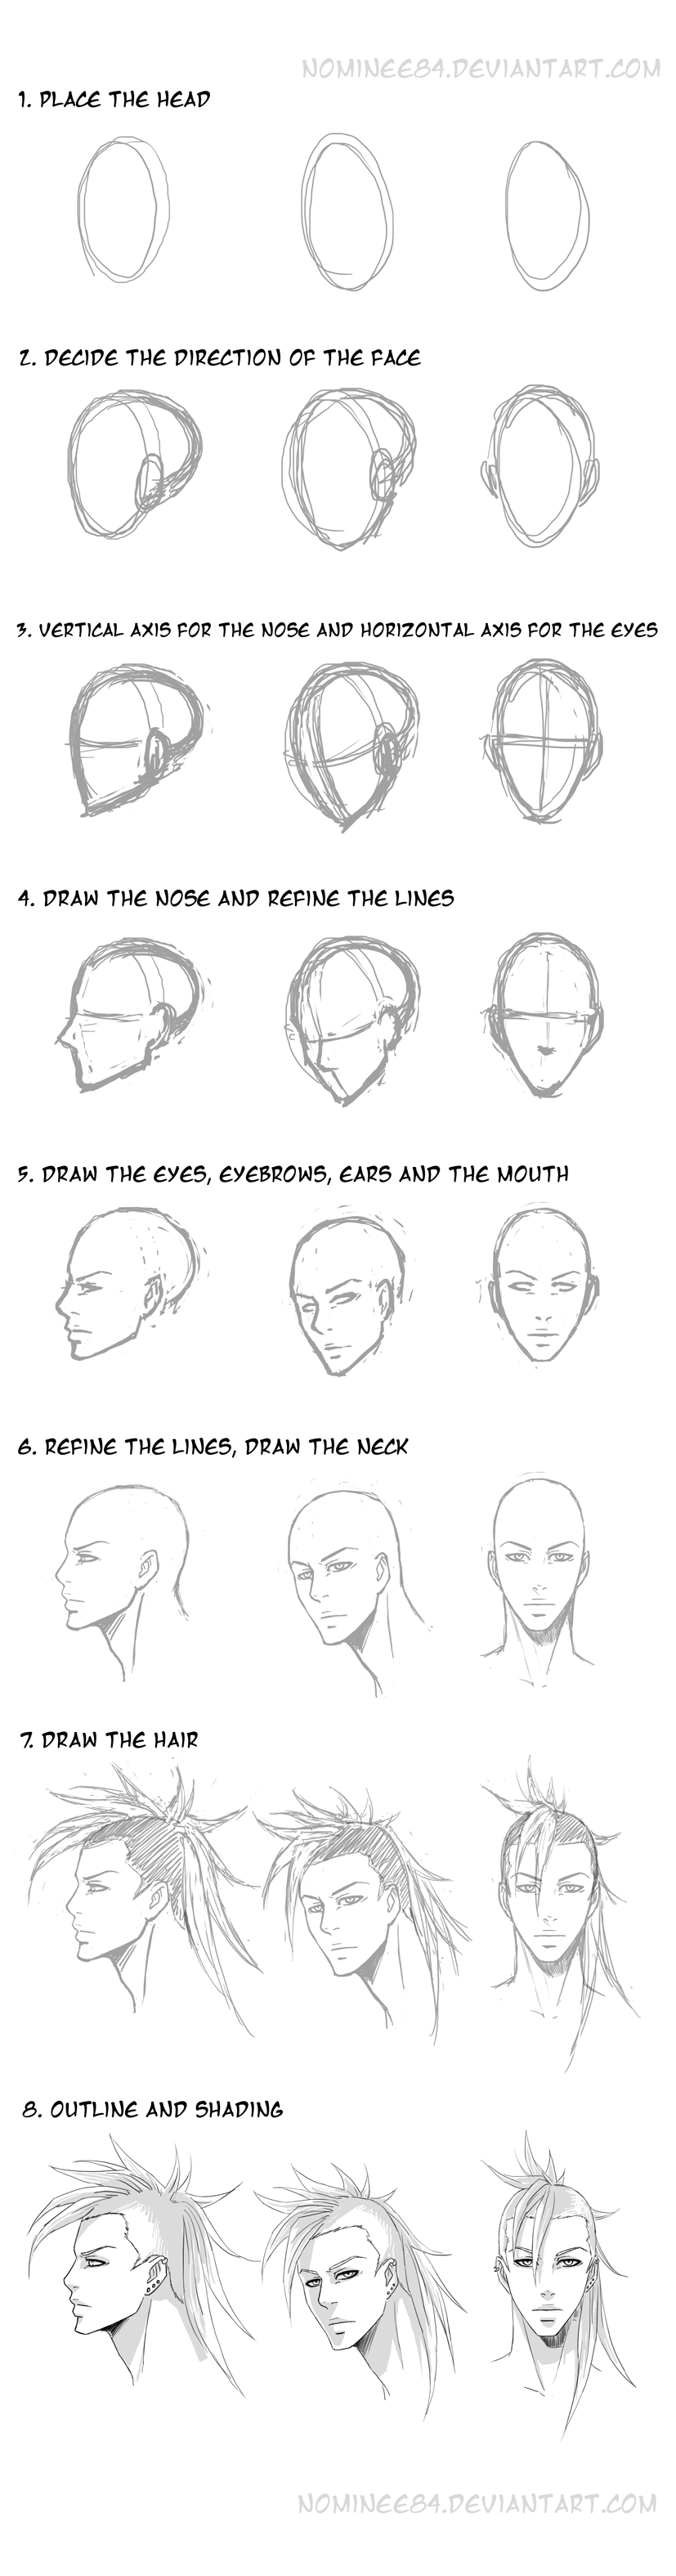 How I draw head and face